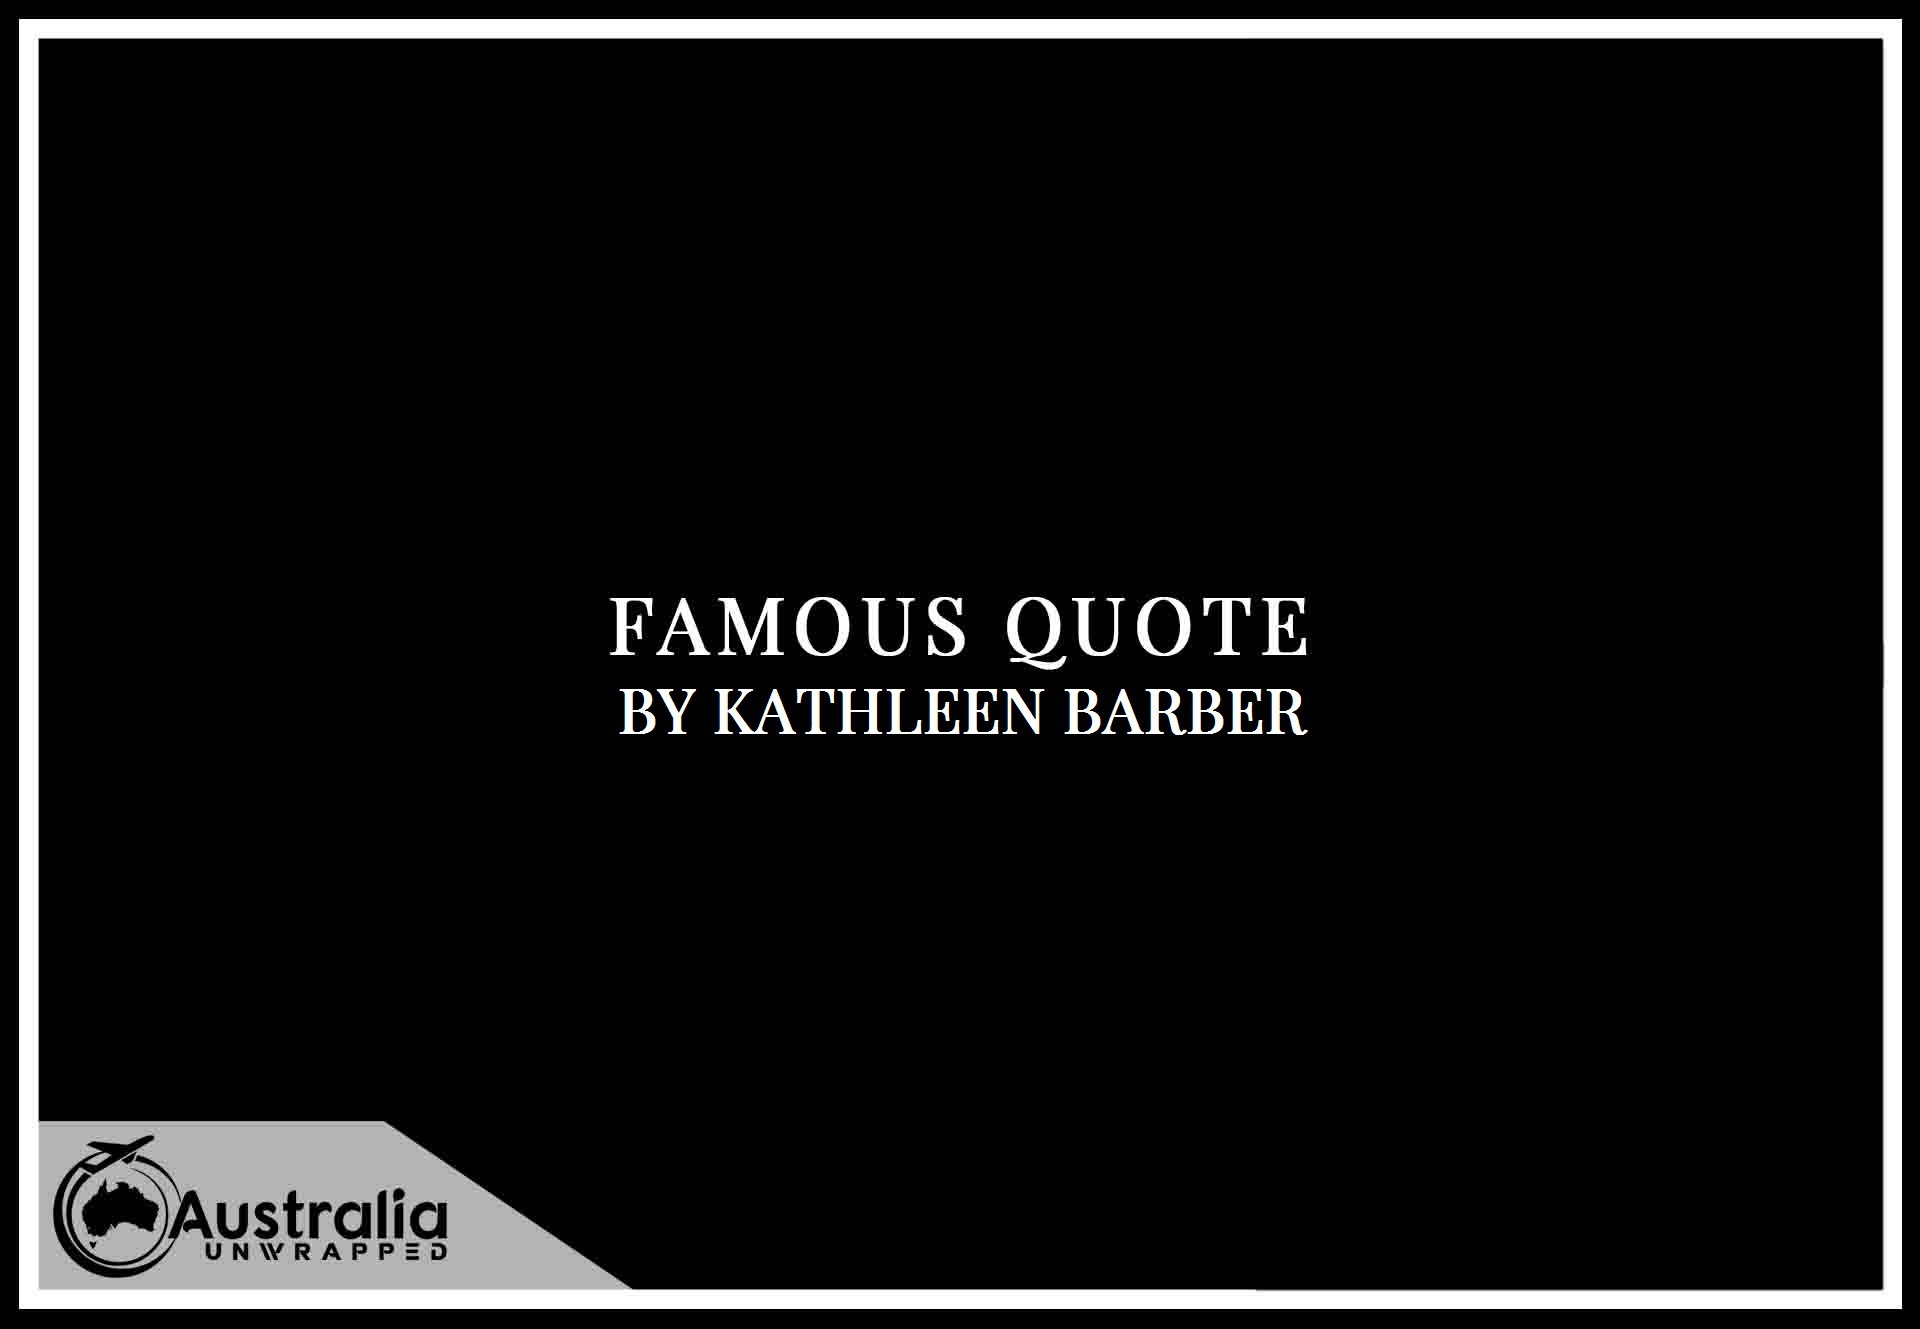 Kathleen Barber's Top 1 Popular and Famous Quotes